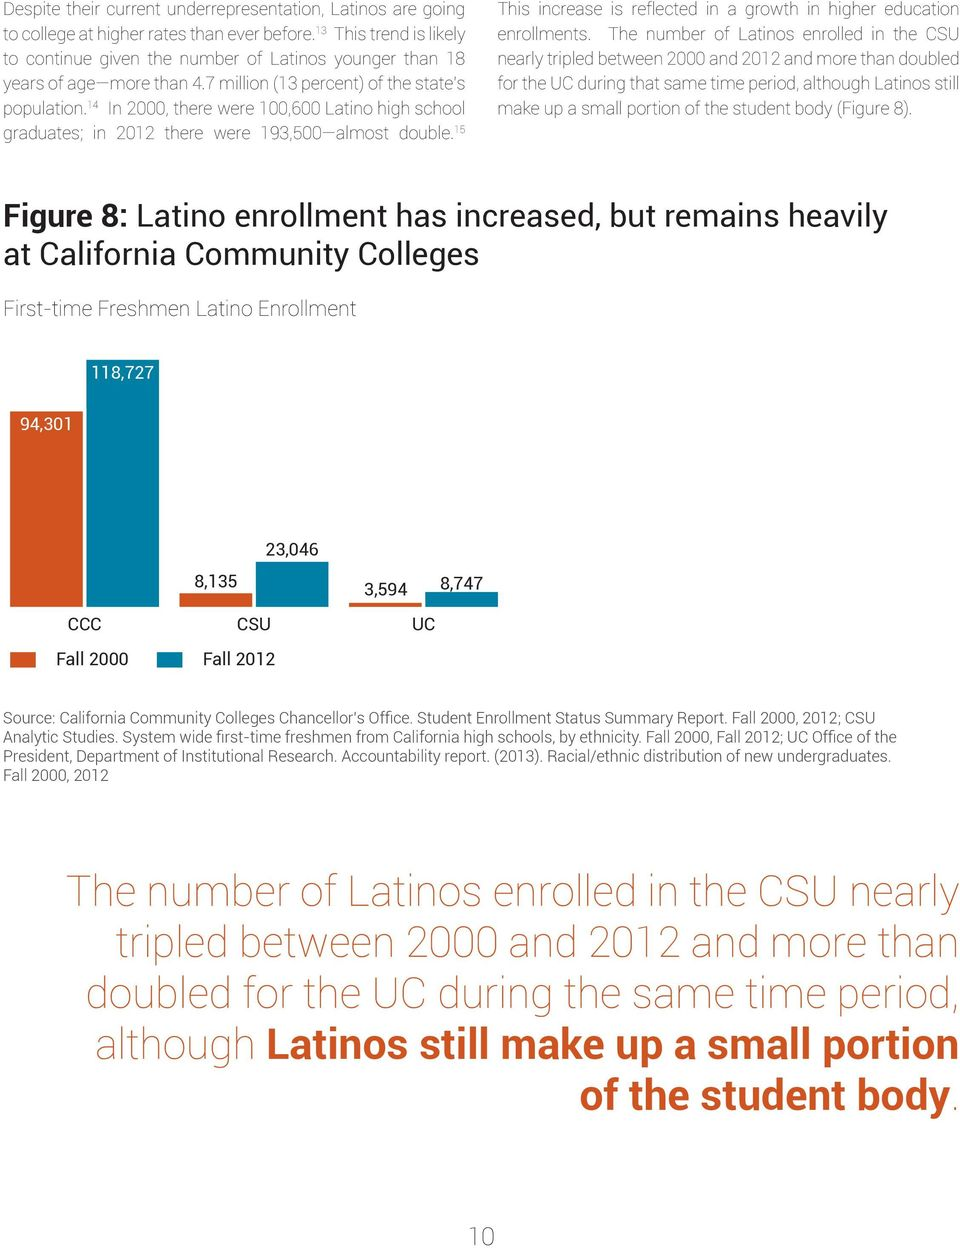 14 In 2000, there were 100,600 Latino high school graduates; in 2012 there were 193,500 almost double. 15 This increase is reflected in a growth in higher education enrollments.